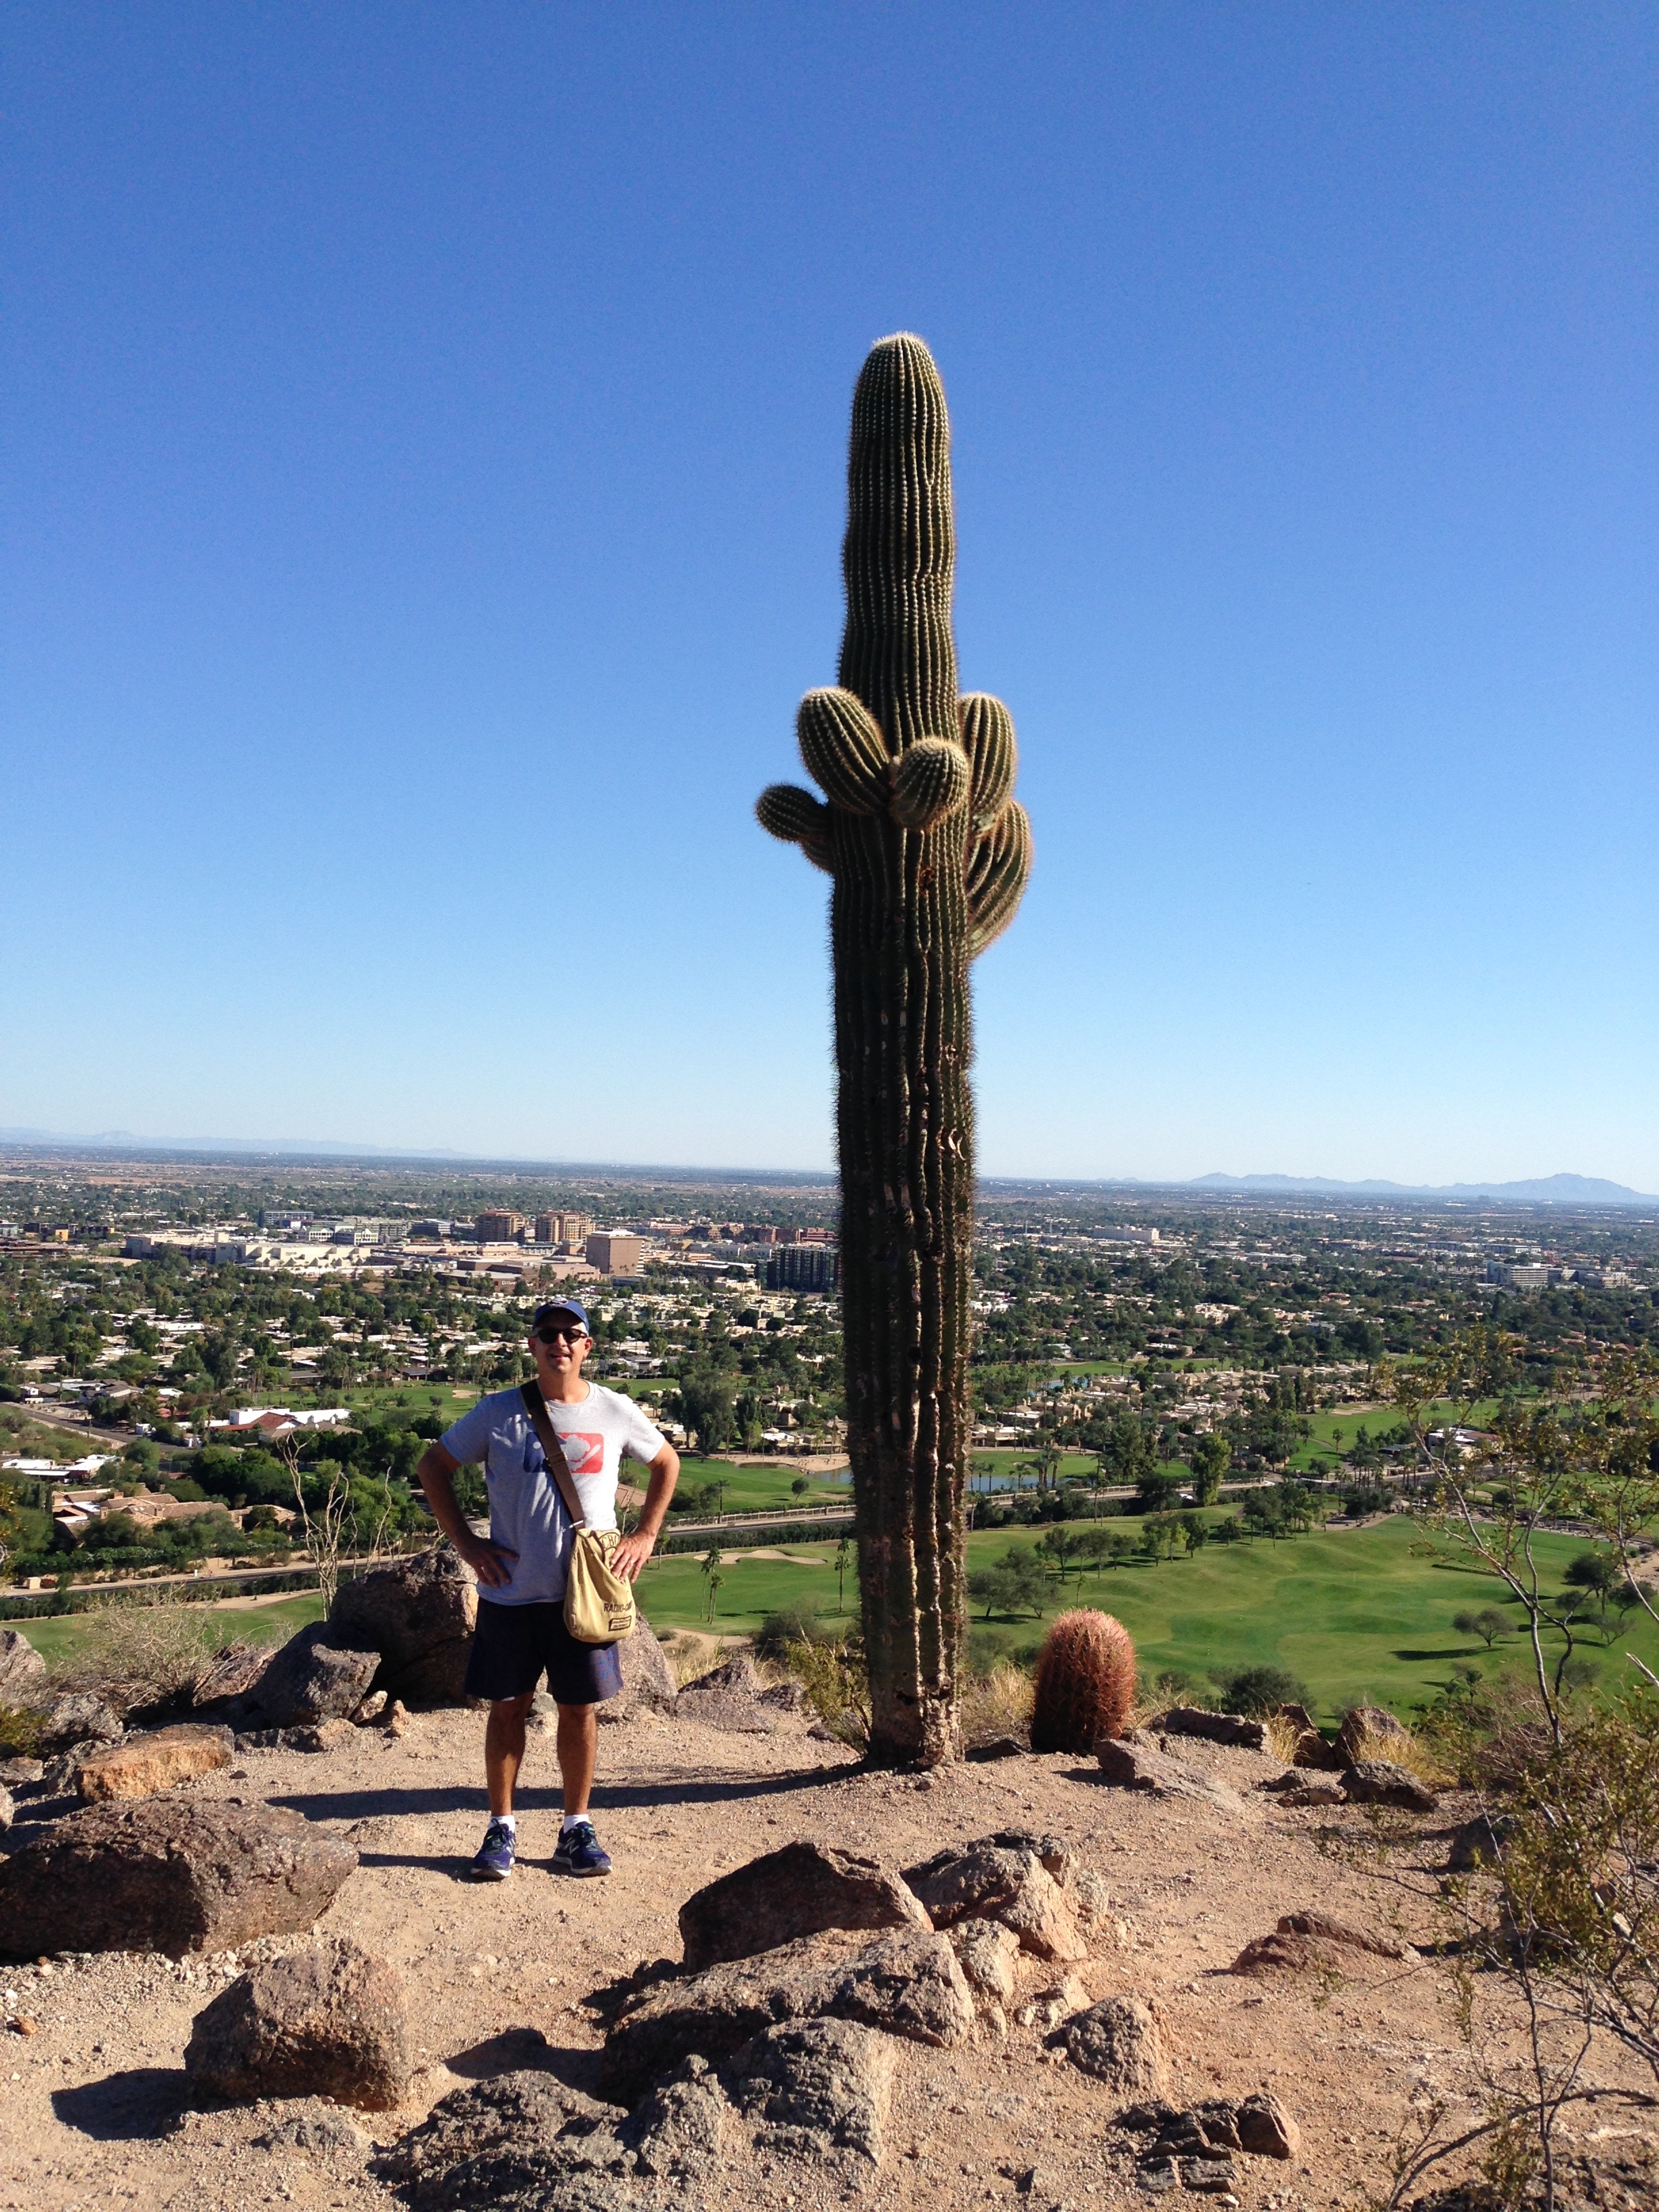 I am much shorter than this Saguaro